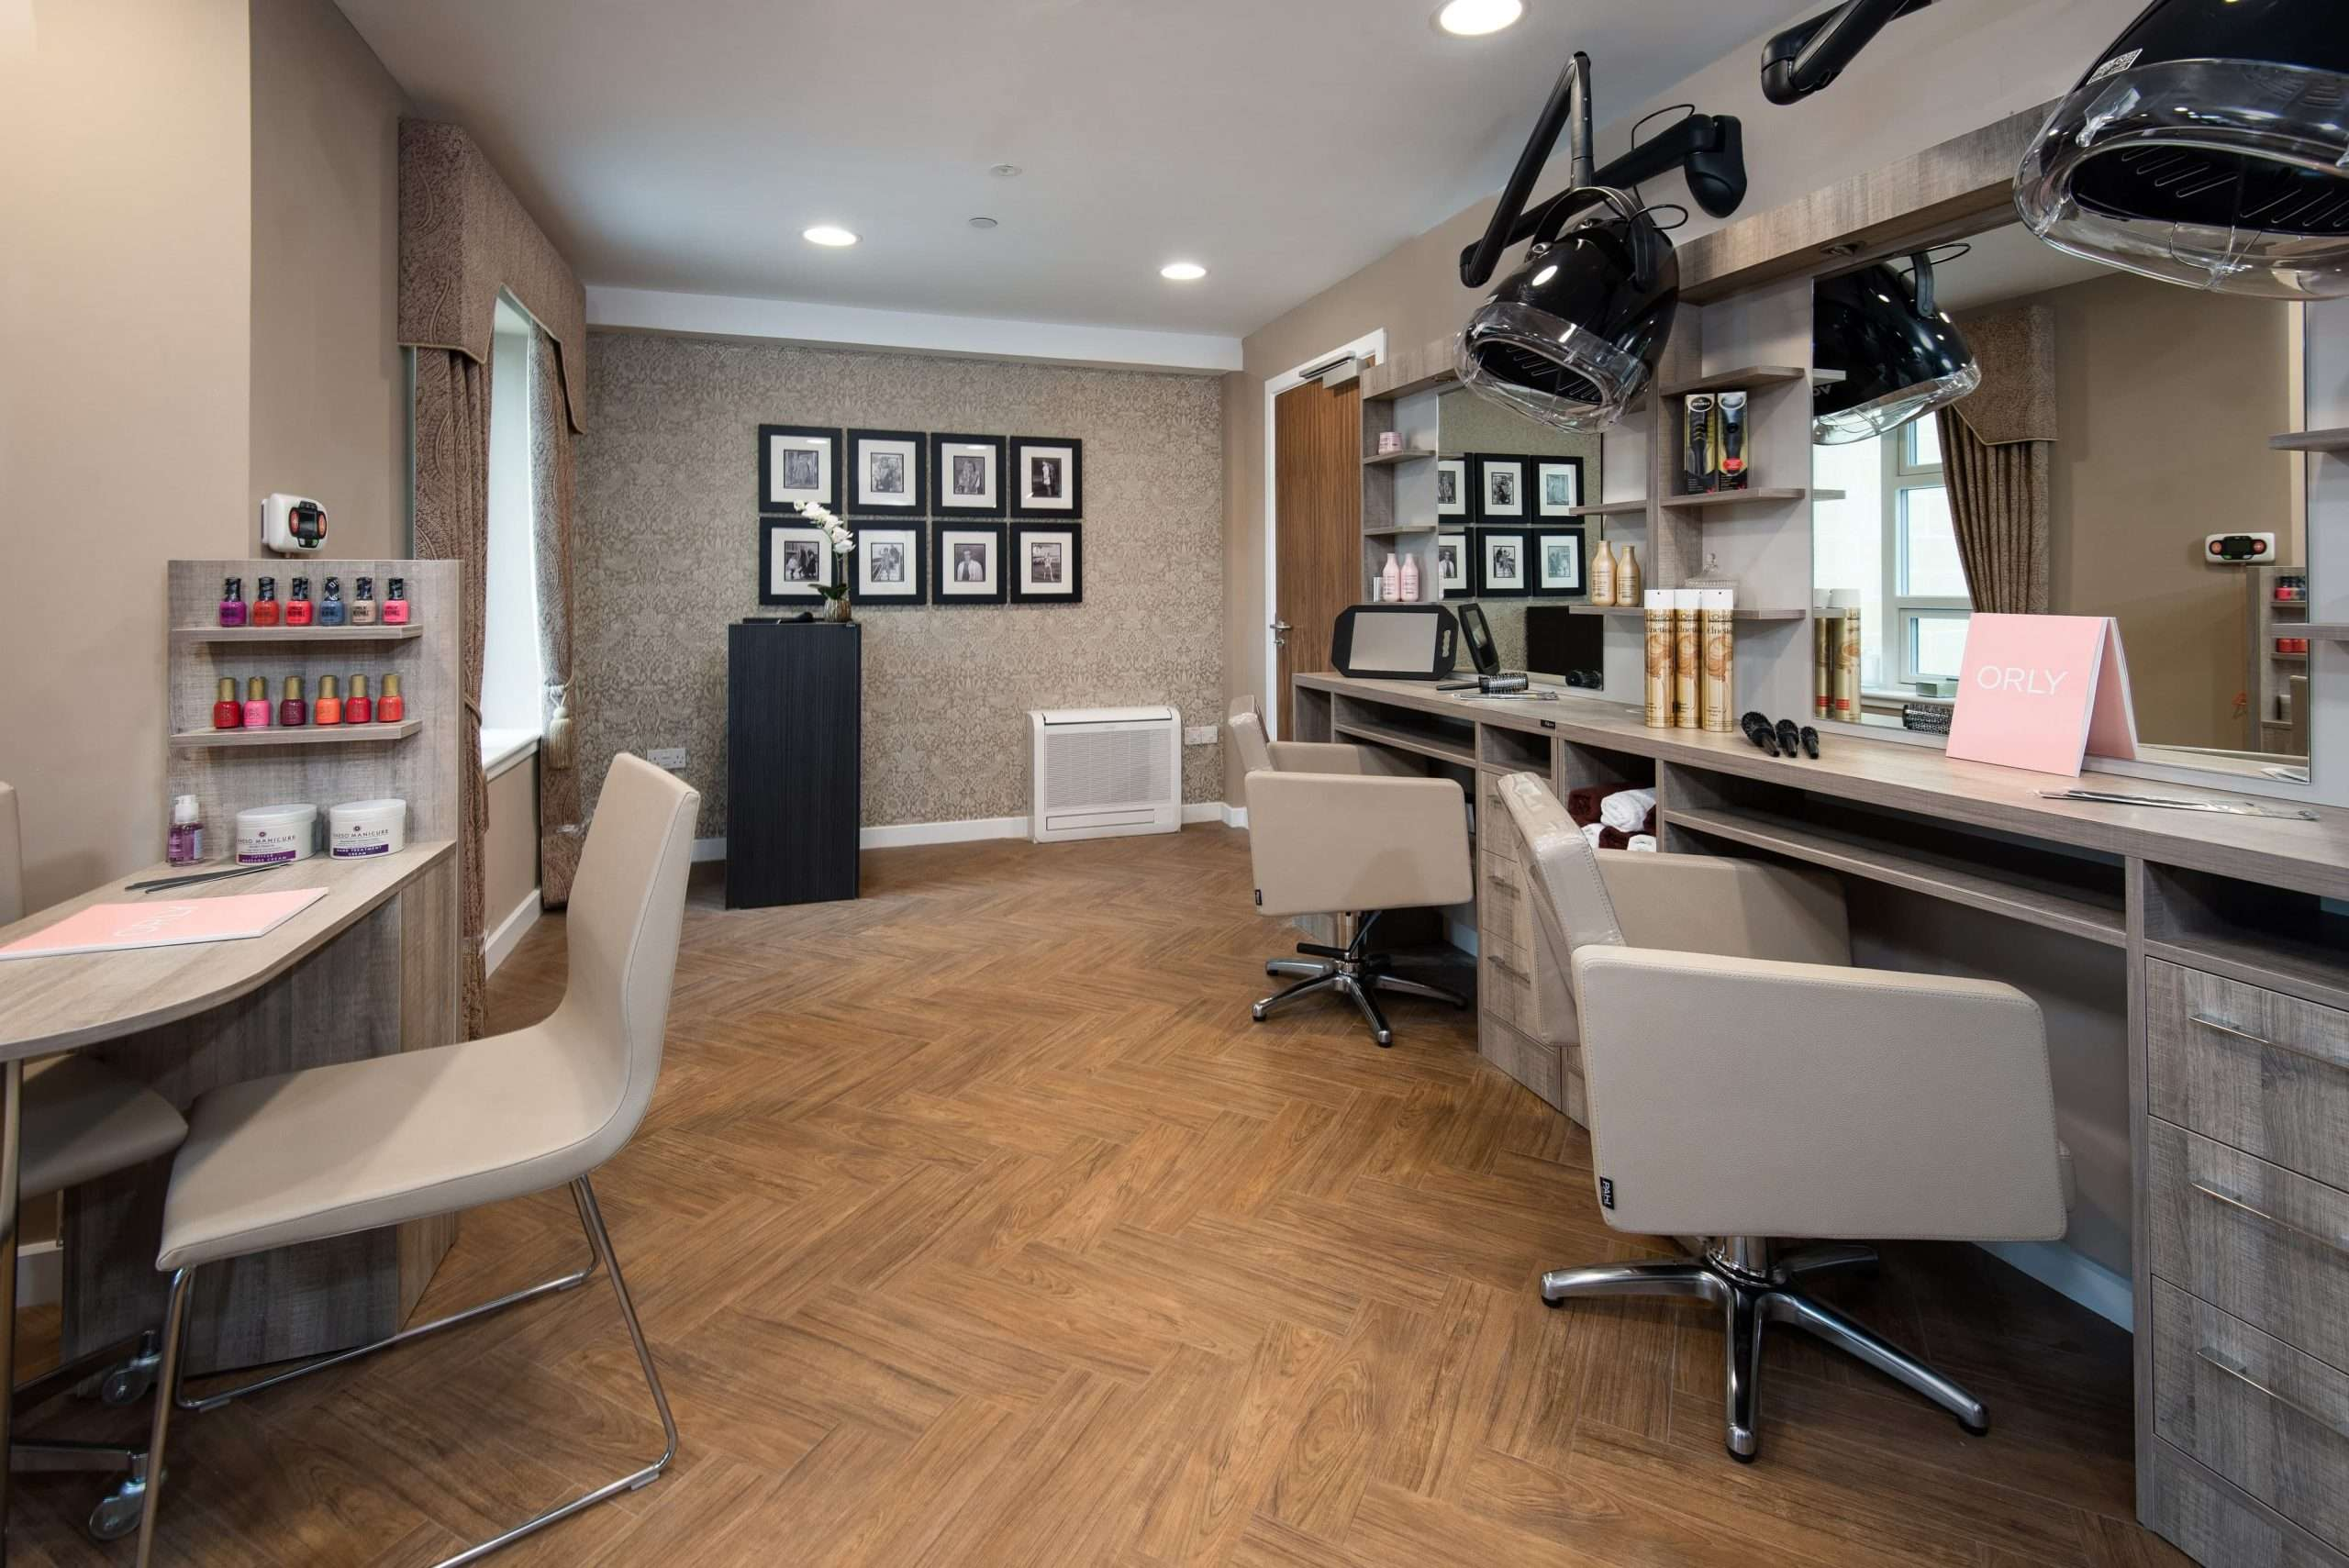 Salon at Cramond Residence